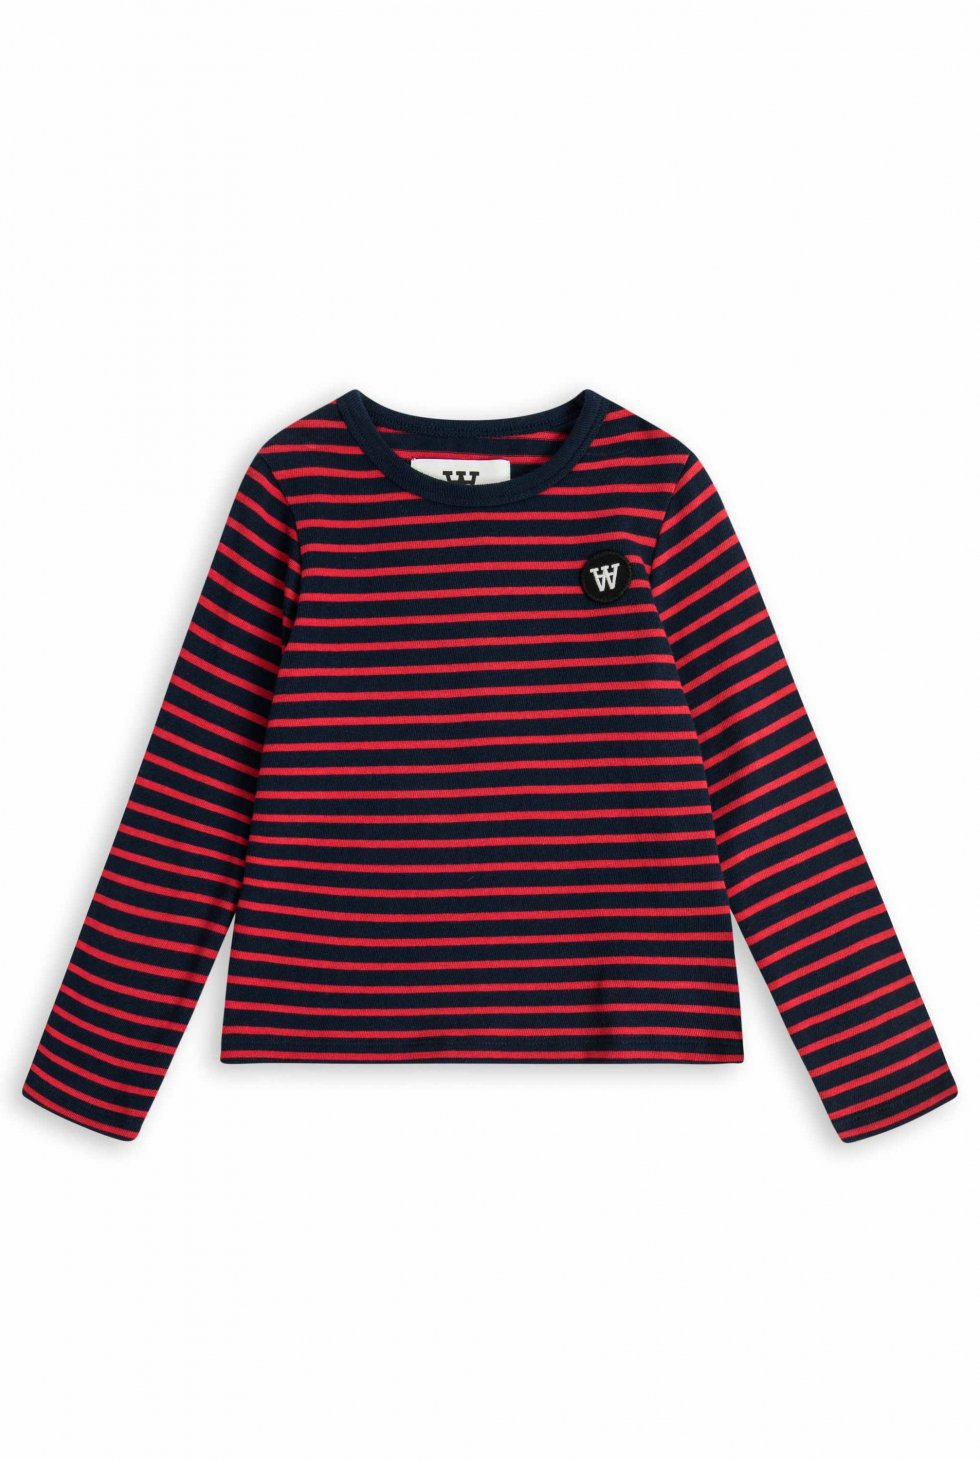 Kim kids long sleeve - navy / red stripes